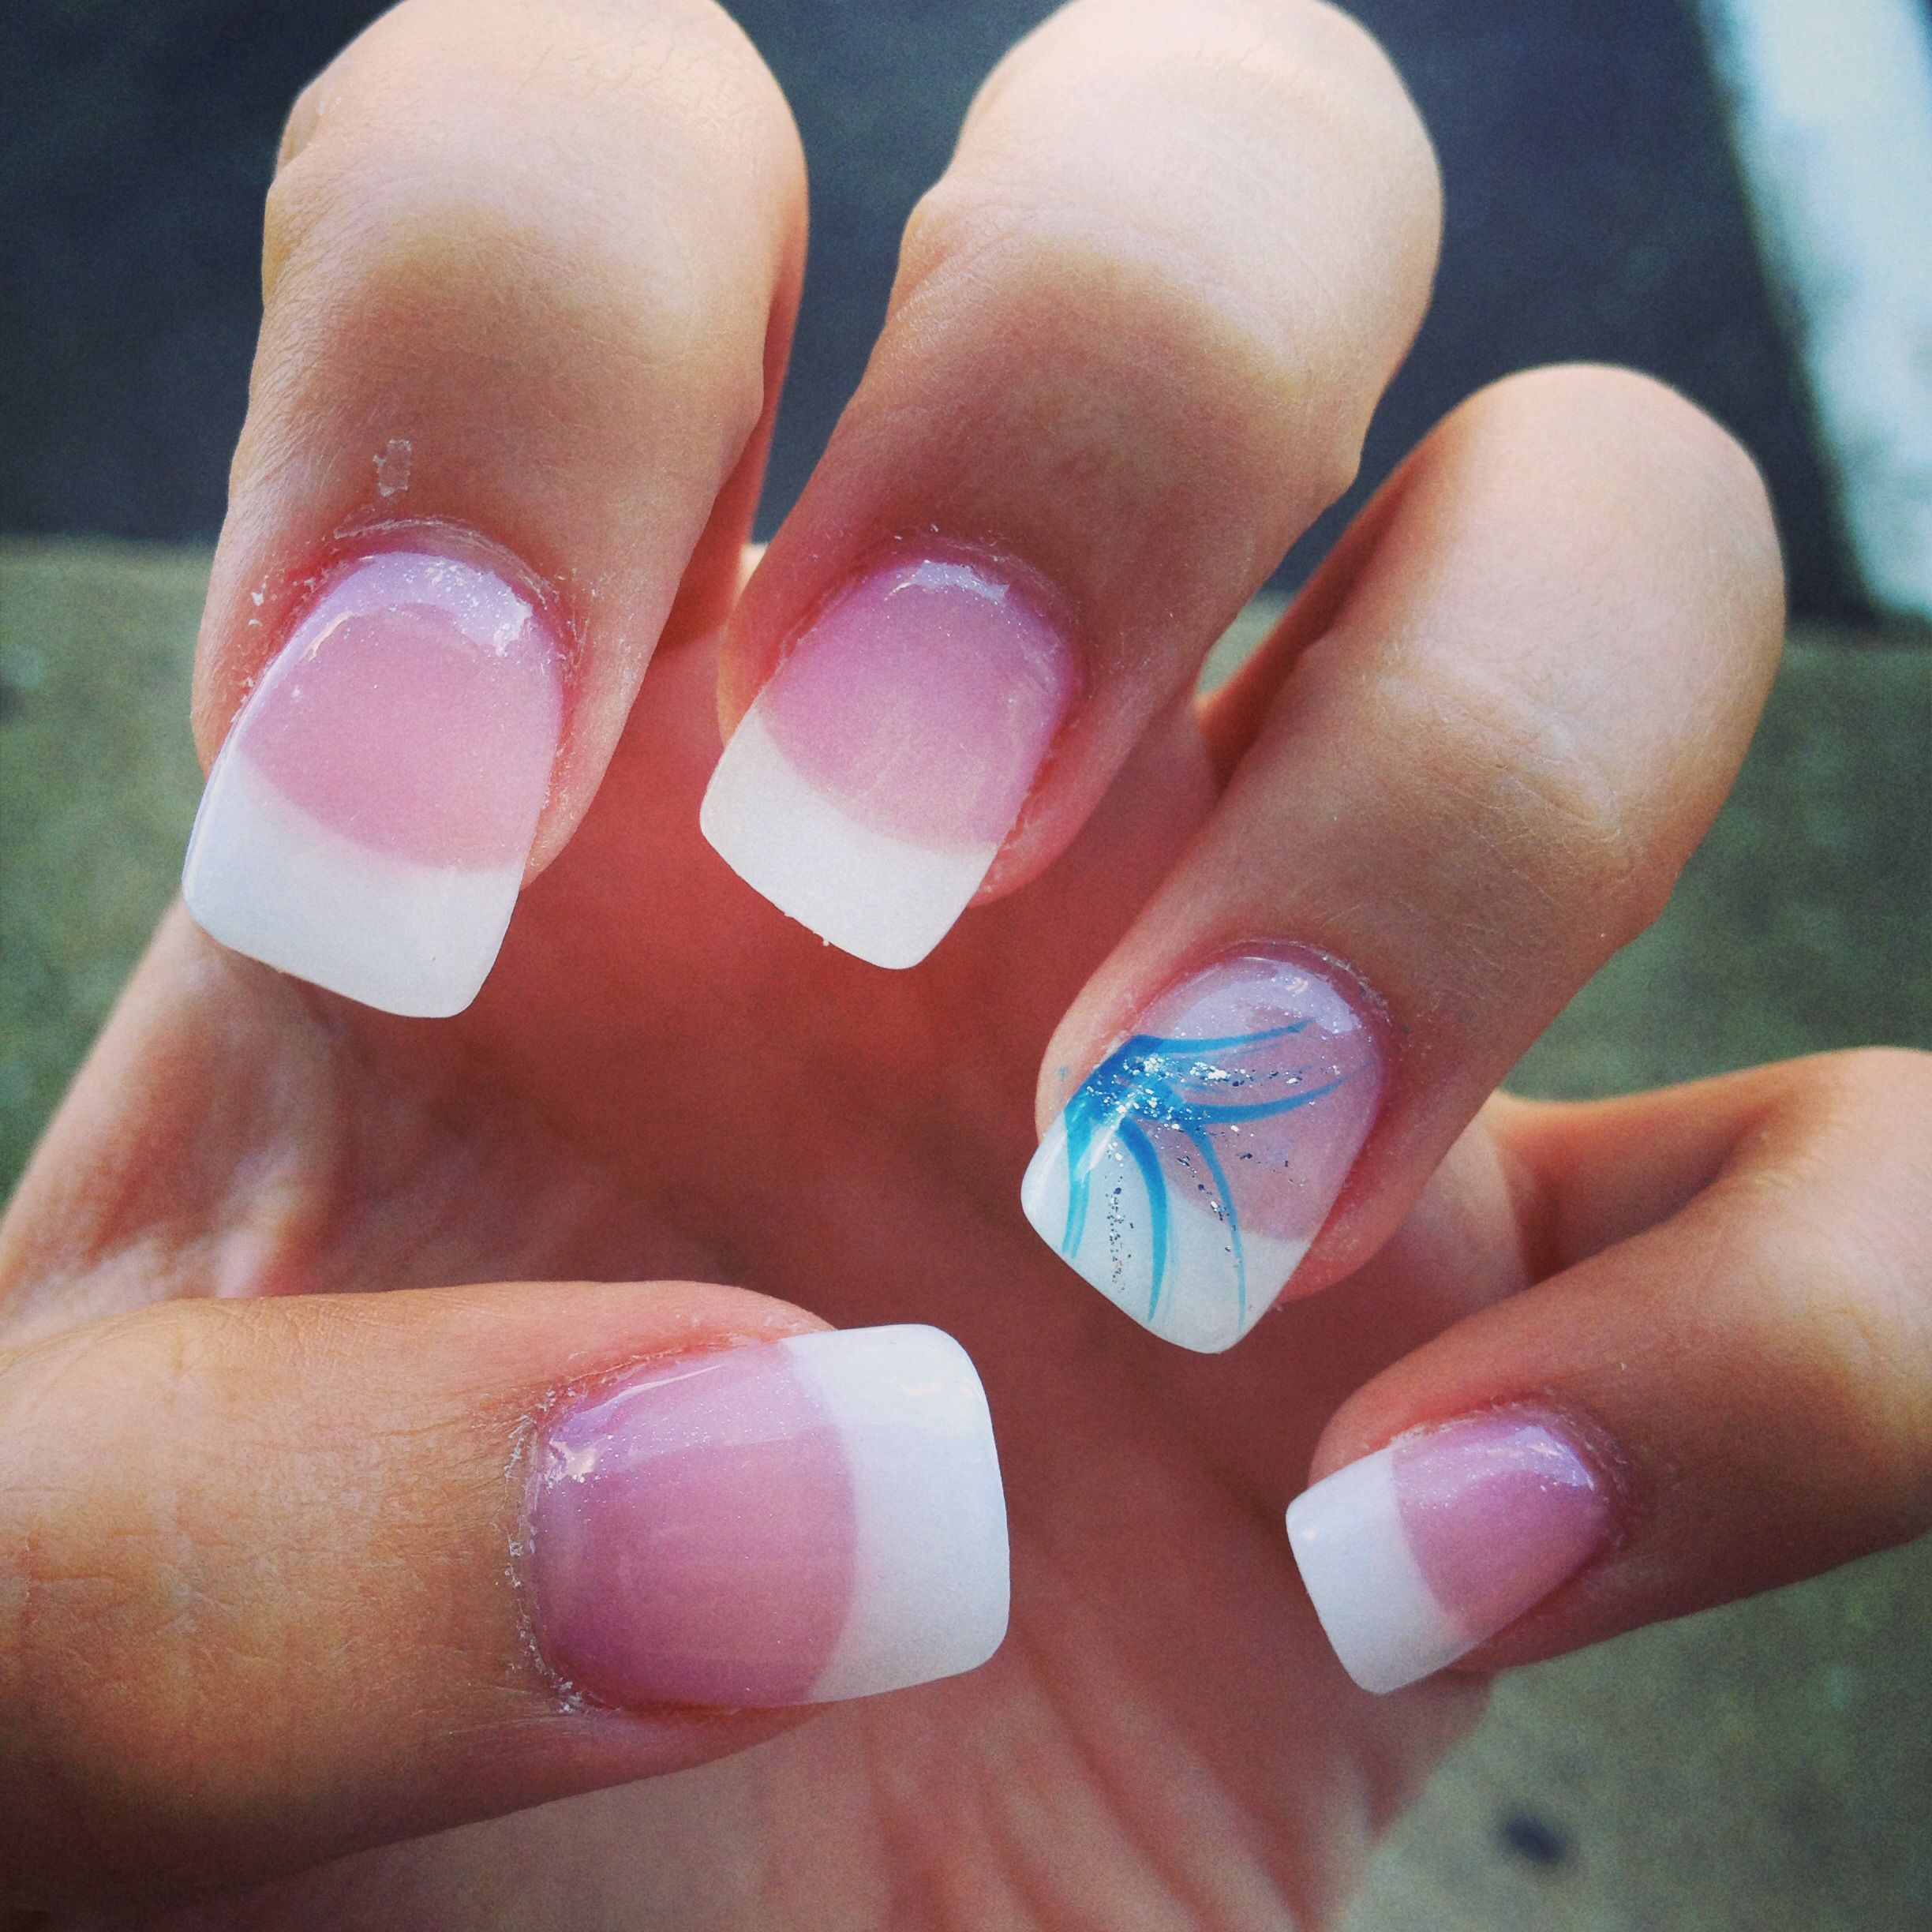 Cute White Tip Nails: Very Sharp! It's White Tip Nails Under The Acrylic